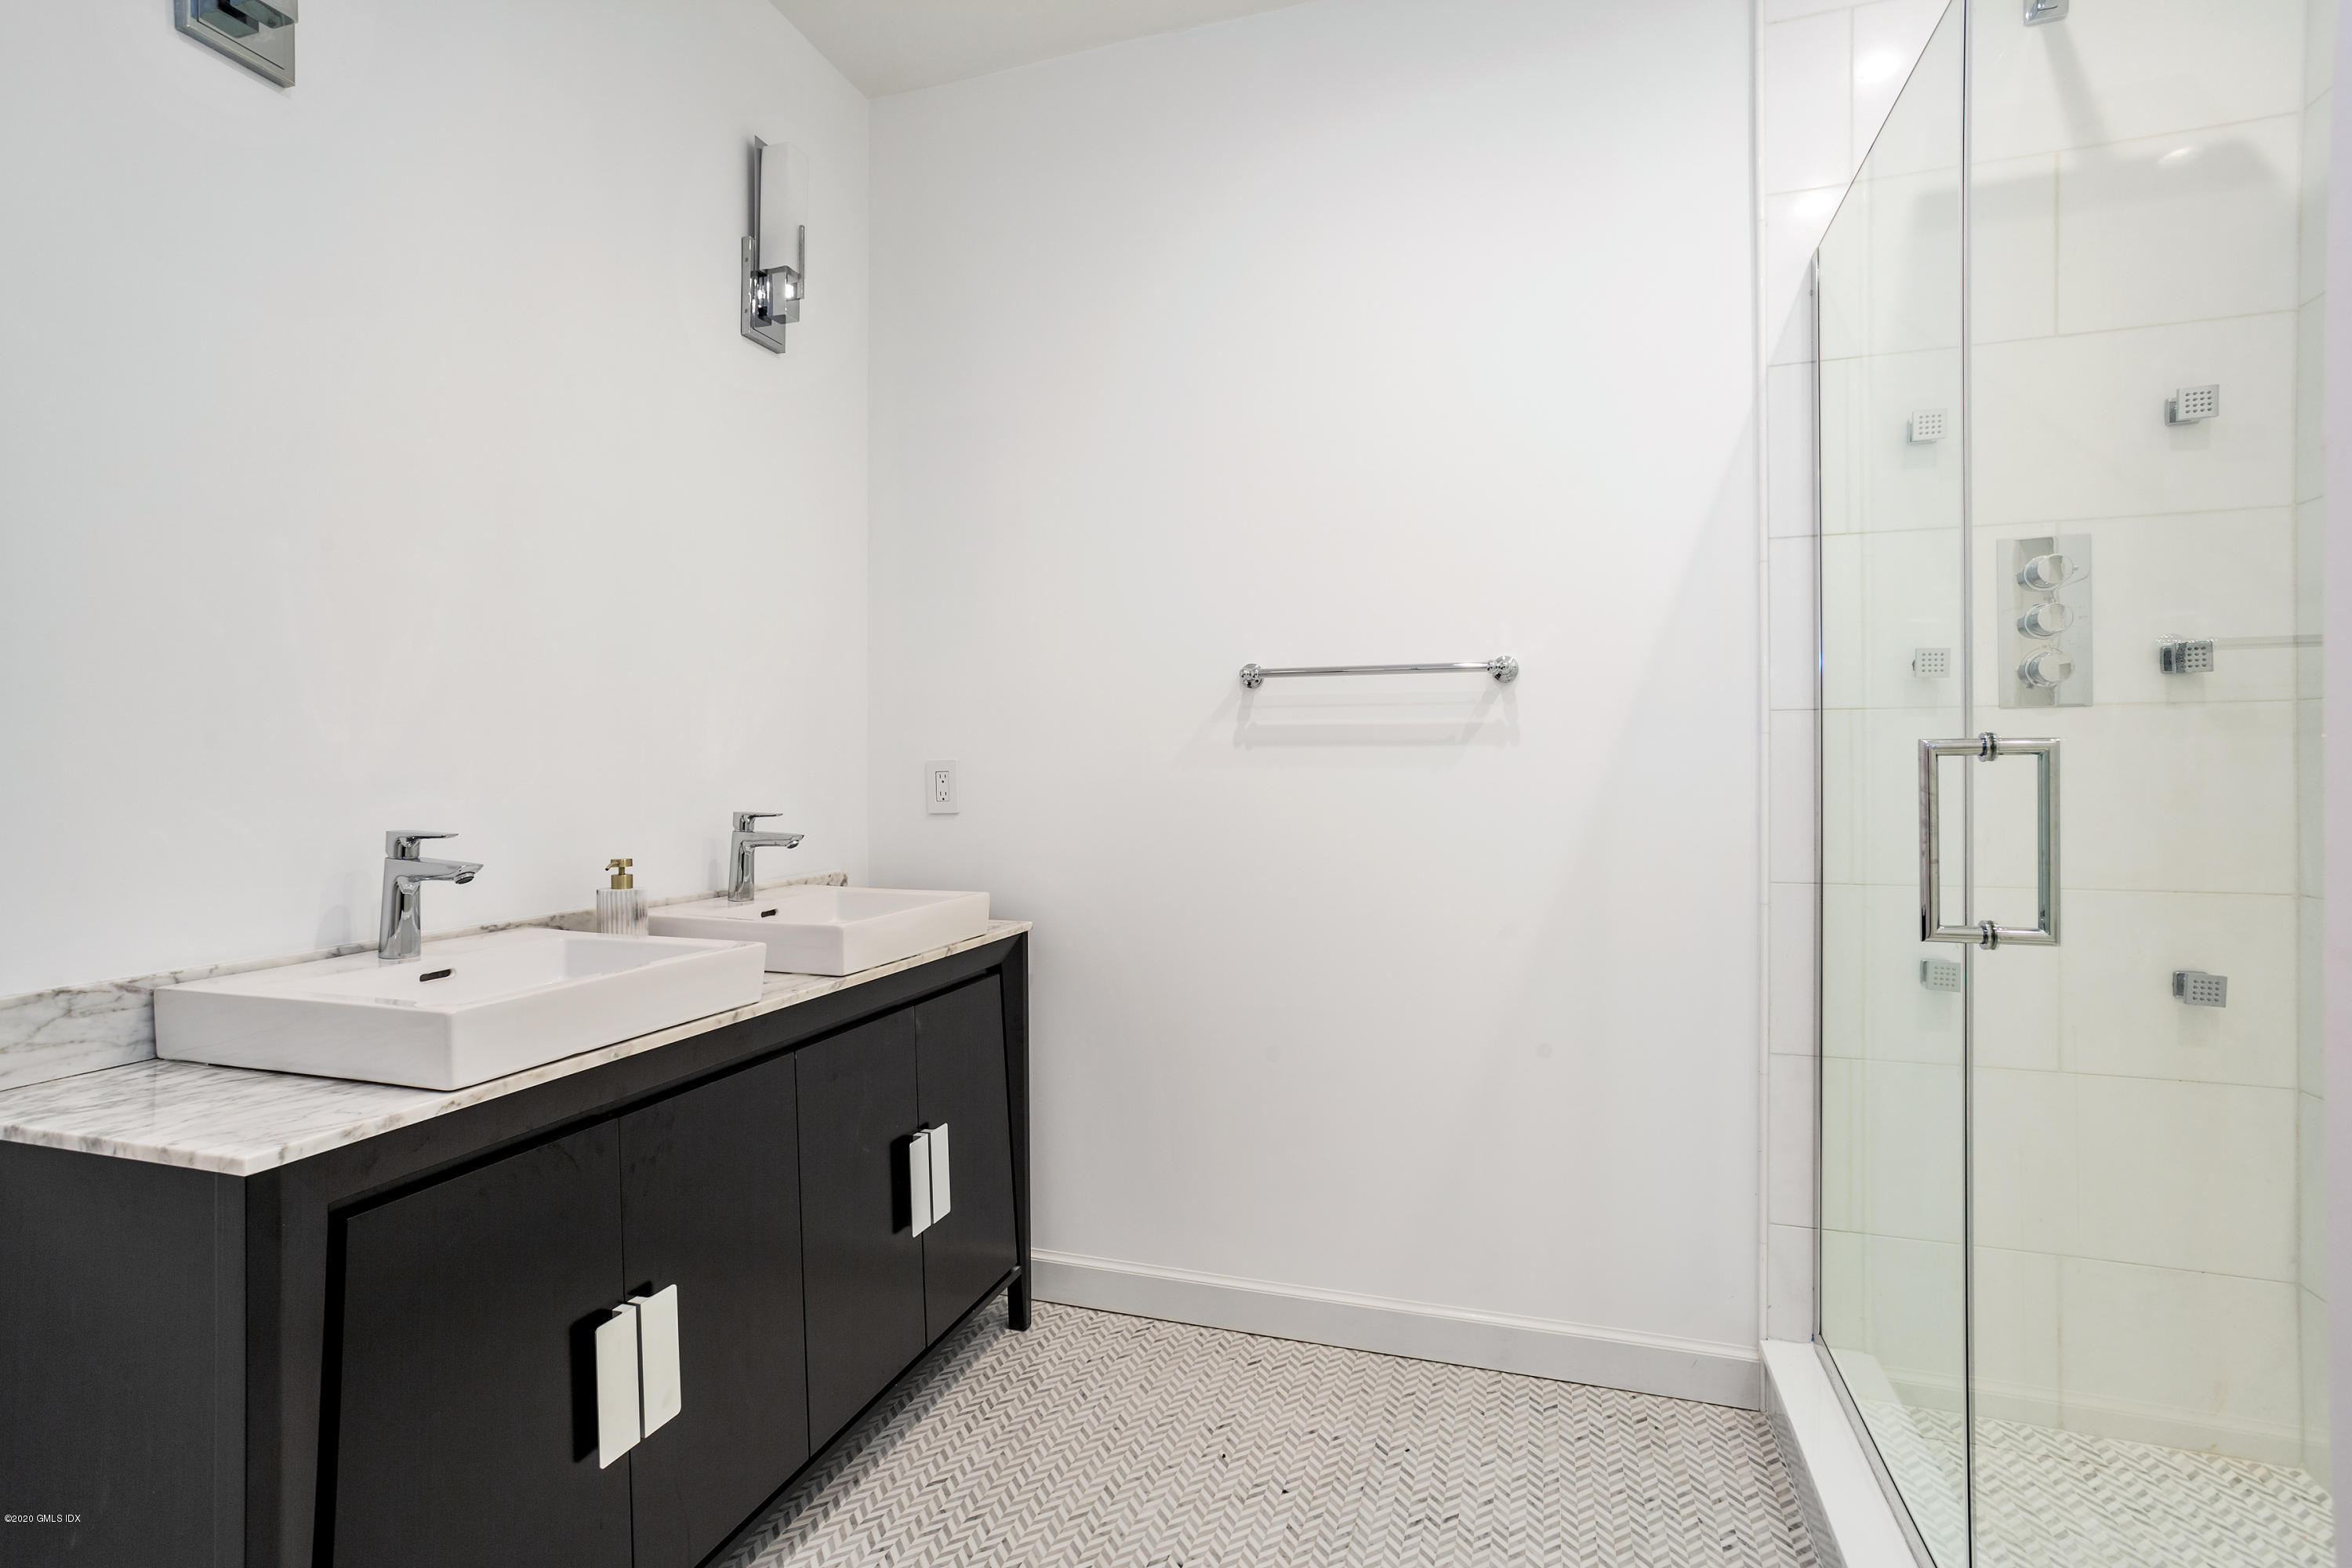 9 Lafayette Court,Greenwich,Connecticut 06830,2 Bedrooms Bedrooms,2 BathroomsBathrooms,Condominium,Lafayette,108568